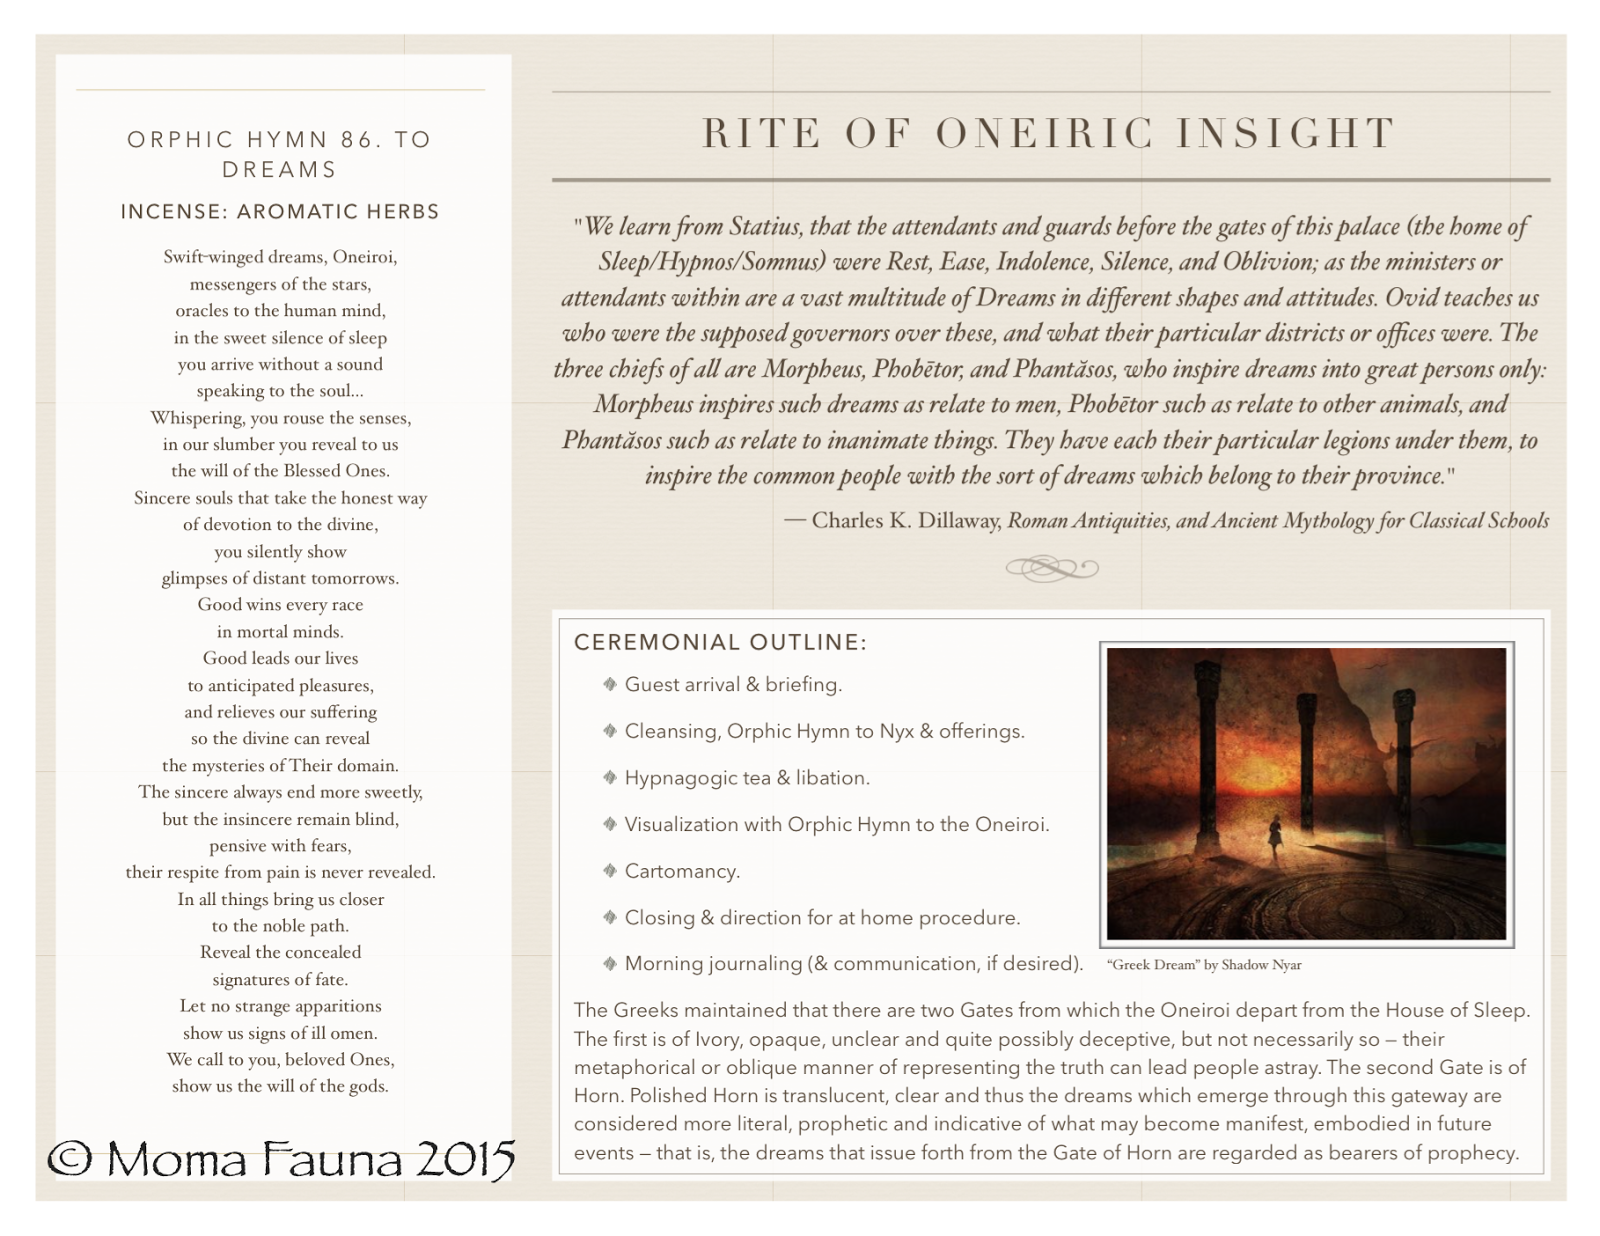 """Rite of Oneiric Insight"" pamphlet, inside panels"